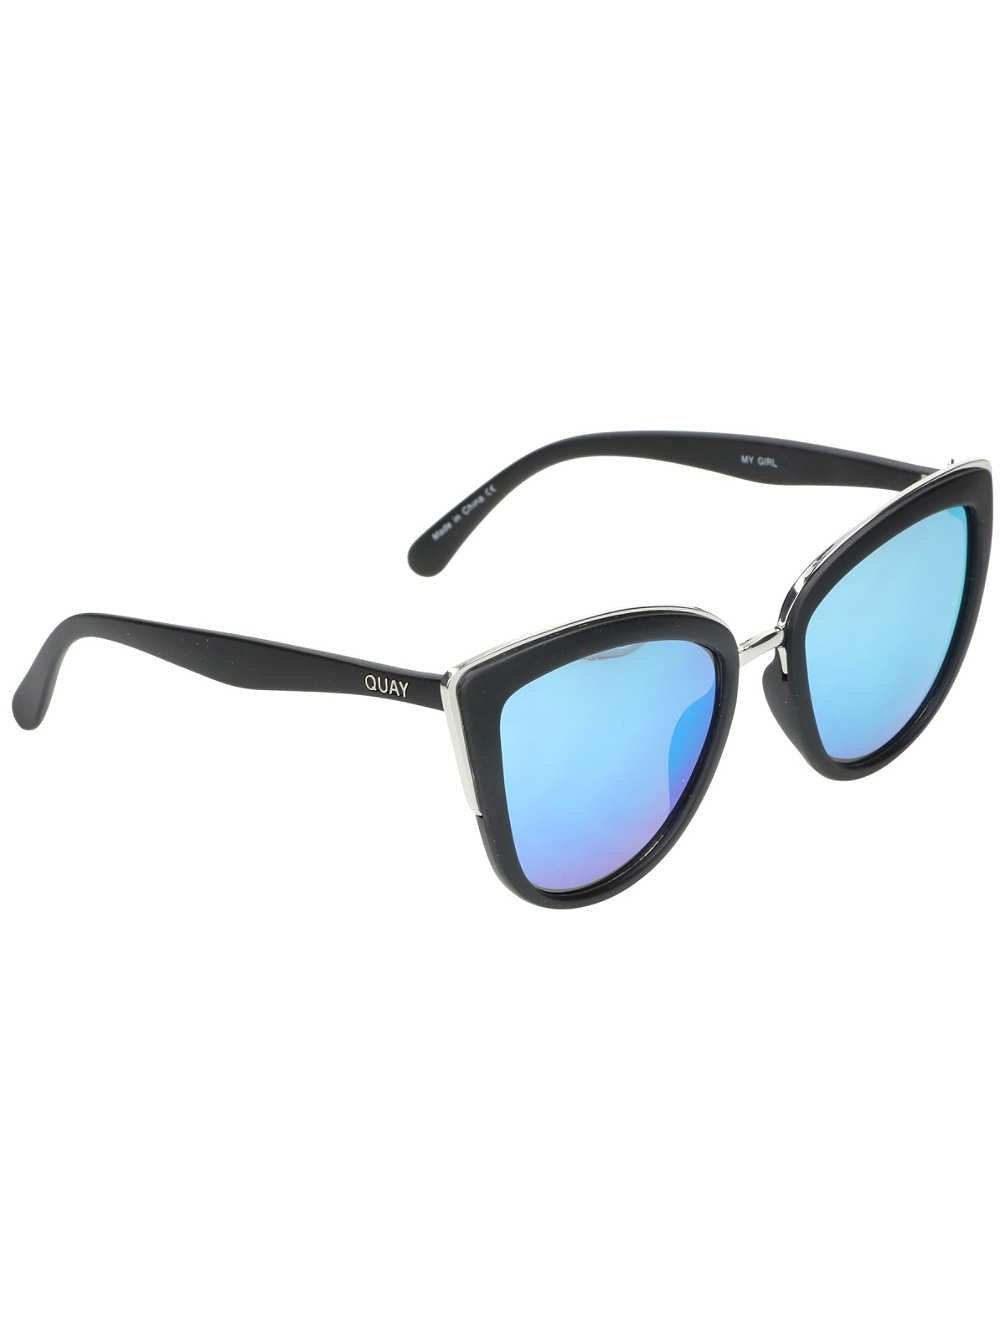 Quay Australia signature style MY GIRL Large Metal Modern Women's Cat Eye Sunglasses with Mirrored/Reflective Non-Polarized Polycarbonate Lenses with 100% UV Protection & Curved Temples, comes with Soft Case Pouch, Designed & Engineered in Australia